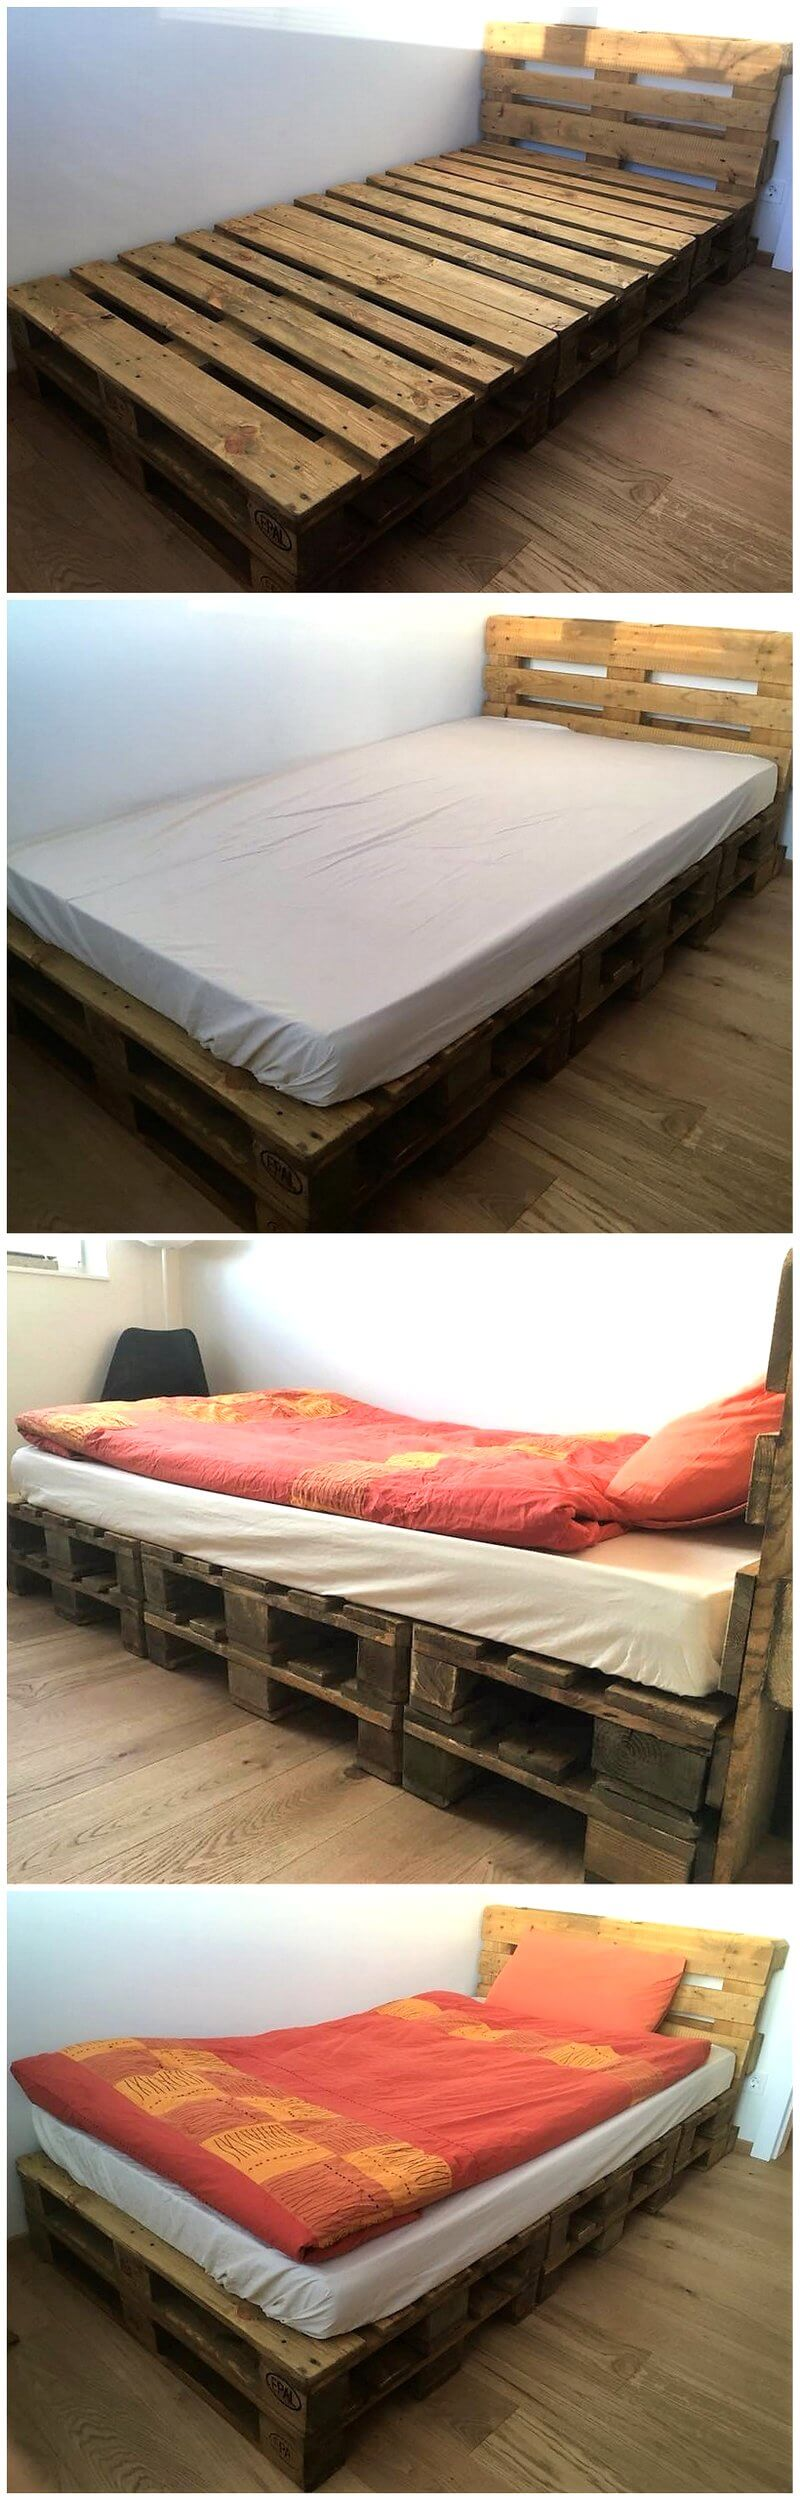 Most Quick And Simple Wood Pallet Bed Idea Pallet Ideas